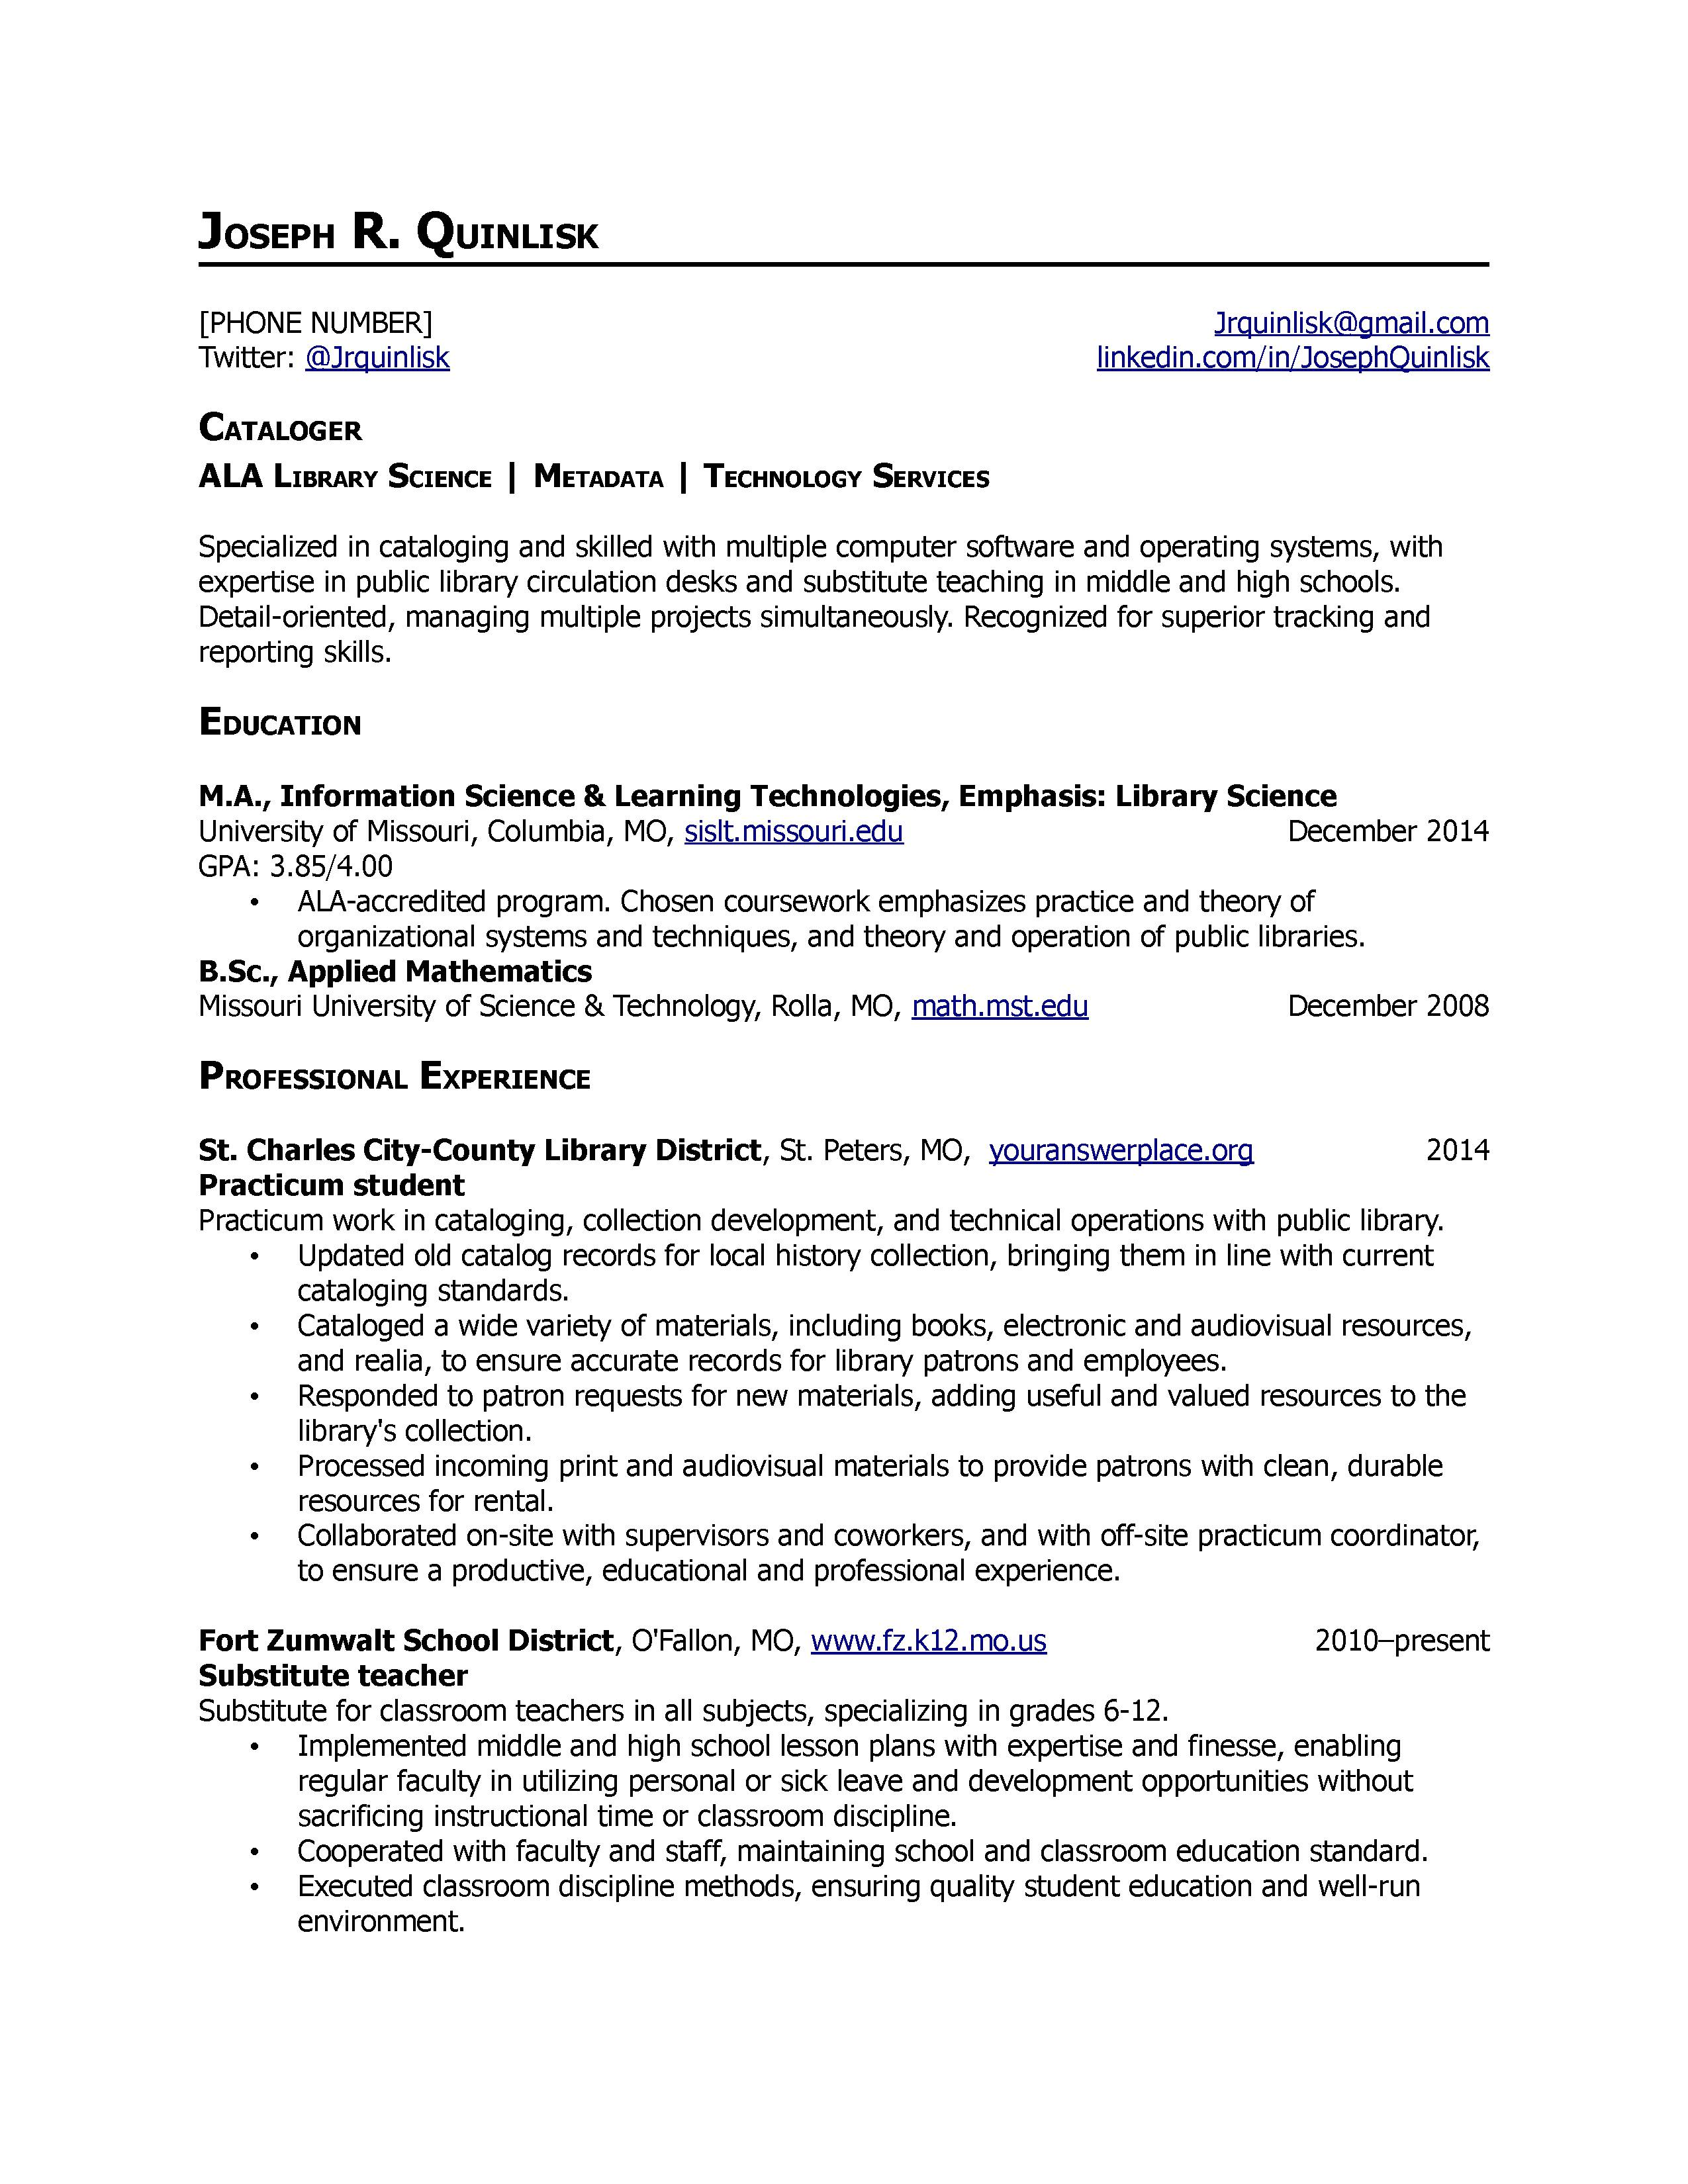 academic librarian resume example